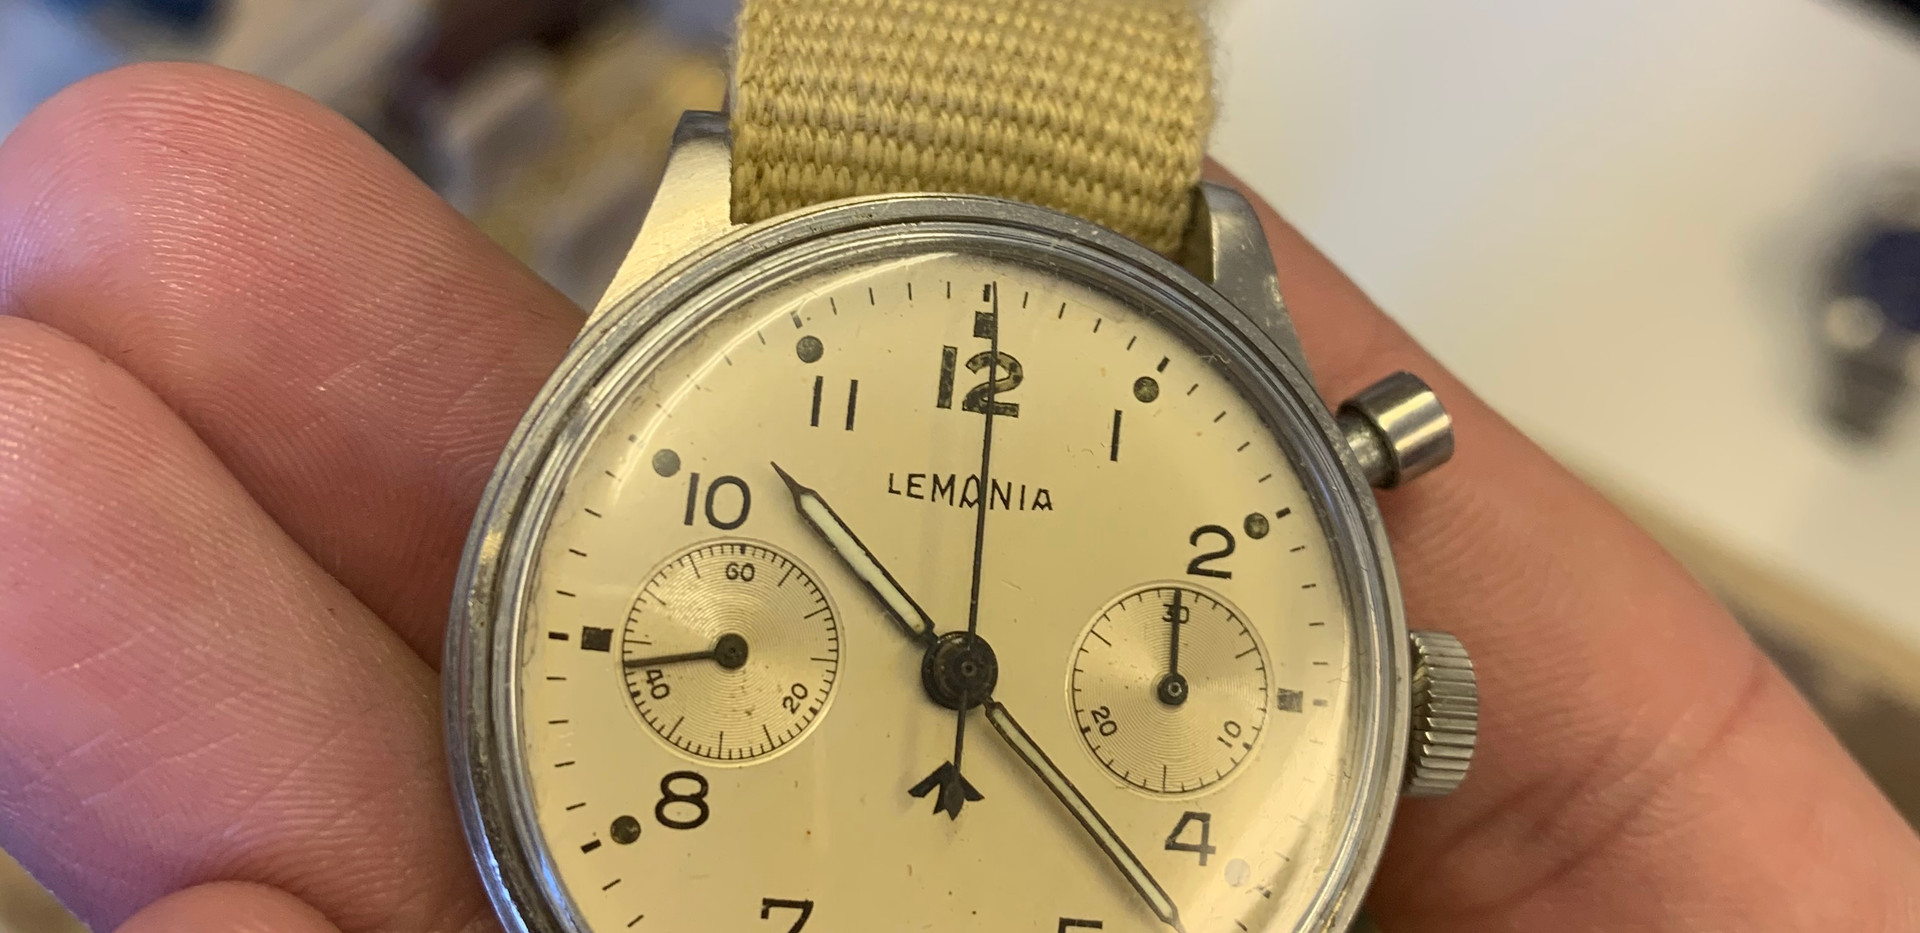 What a stunner... Military issue Lemania monopusher chronograph.